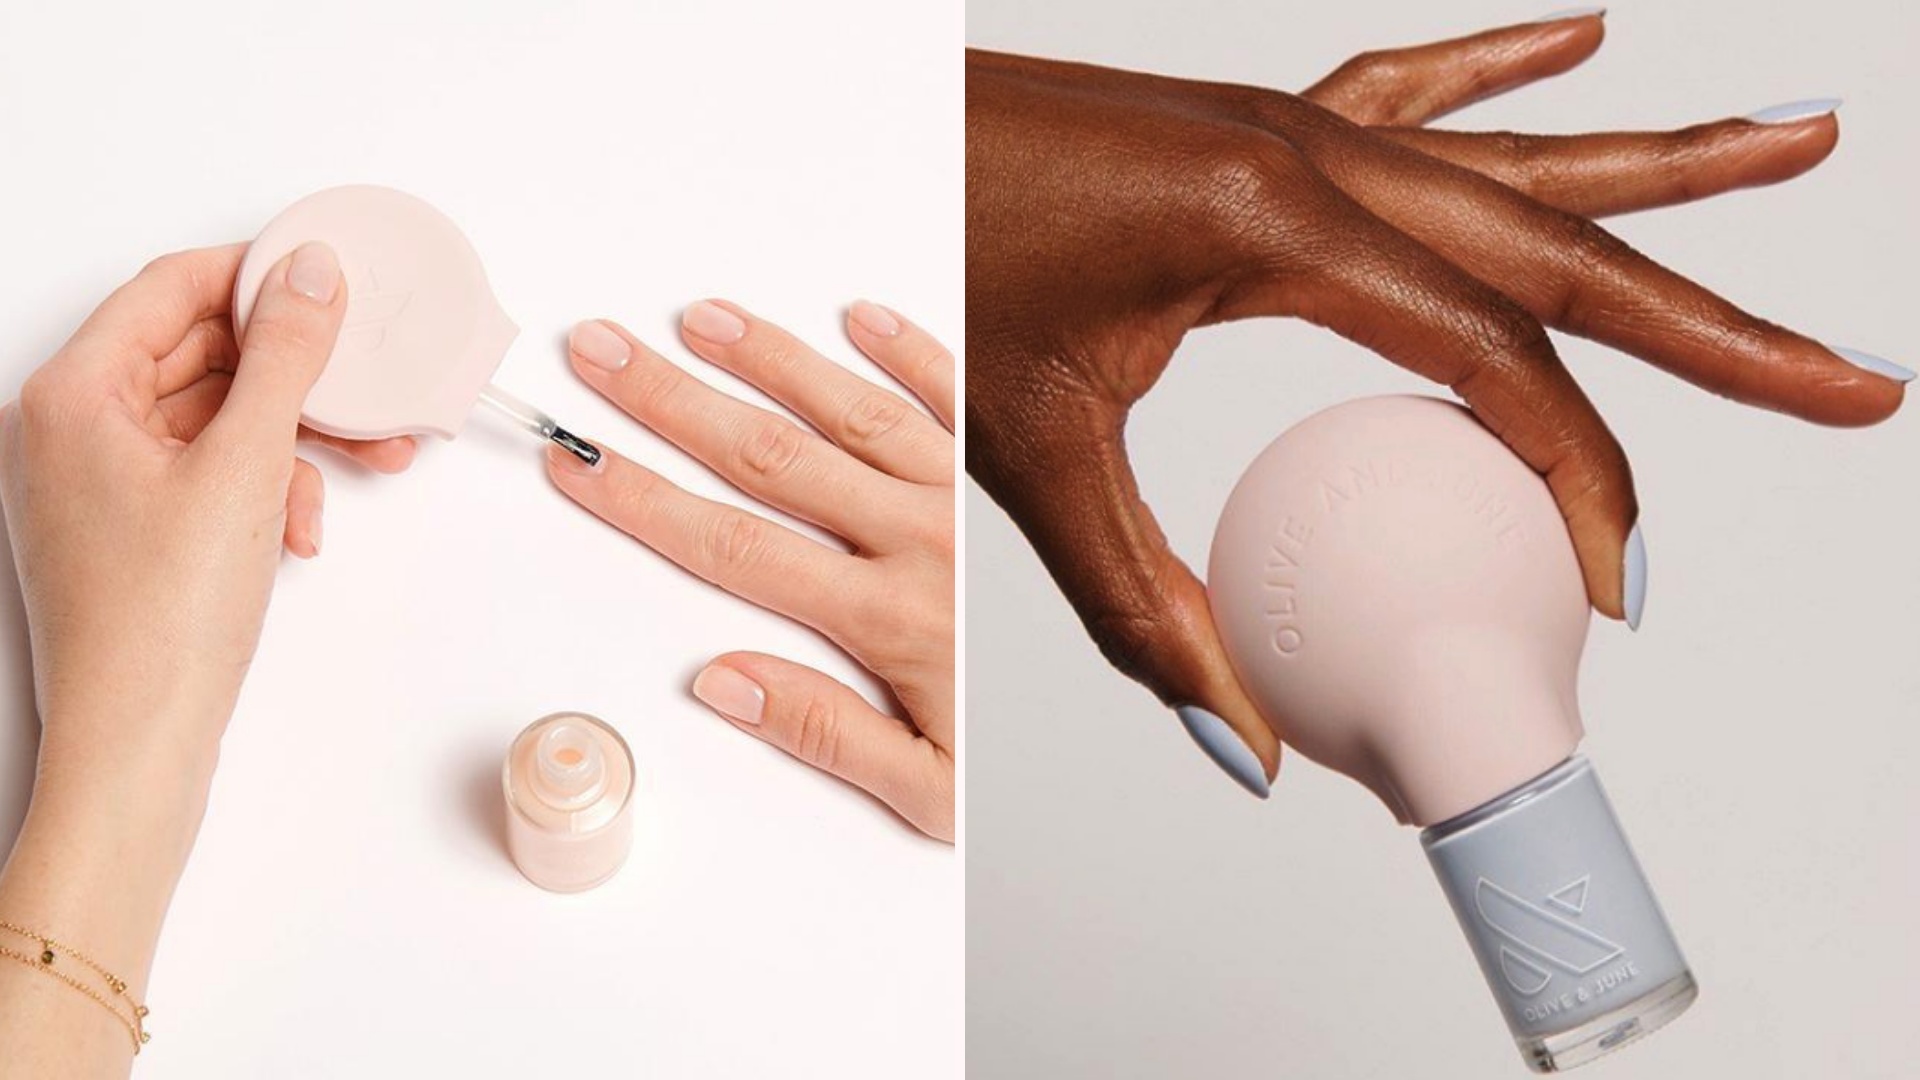 two people paint their nails with a rounded brush.